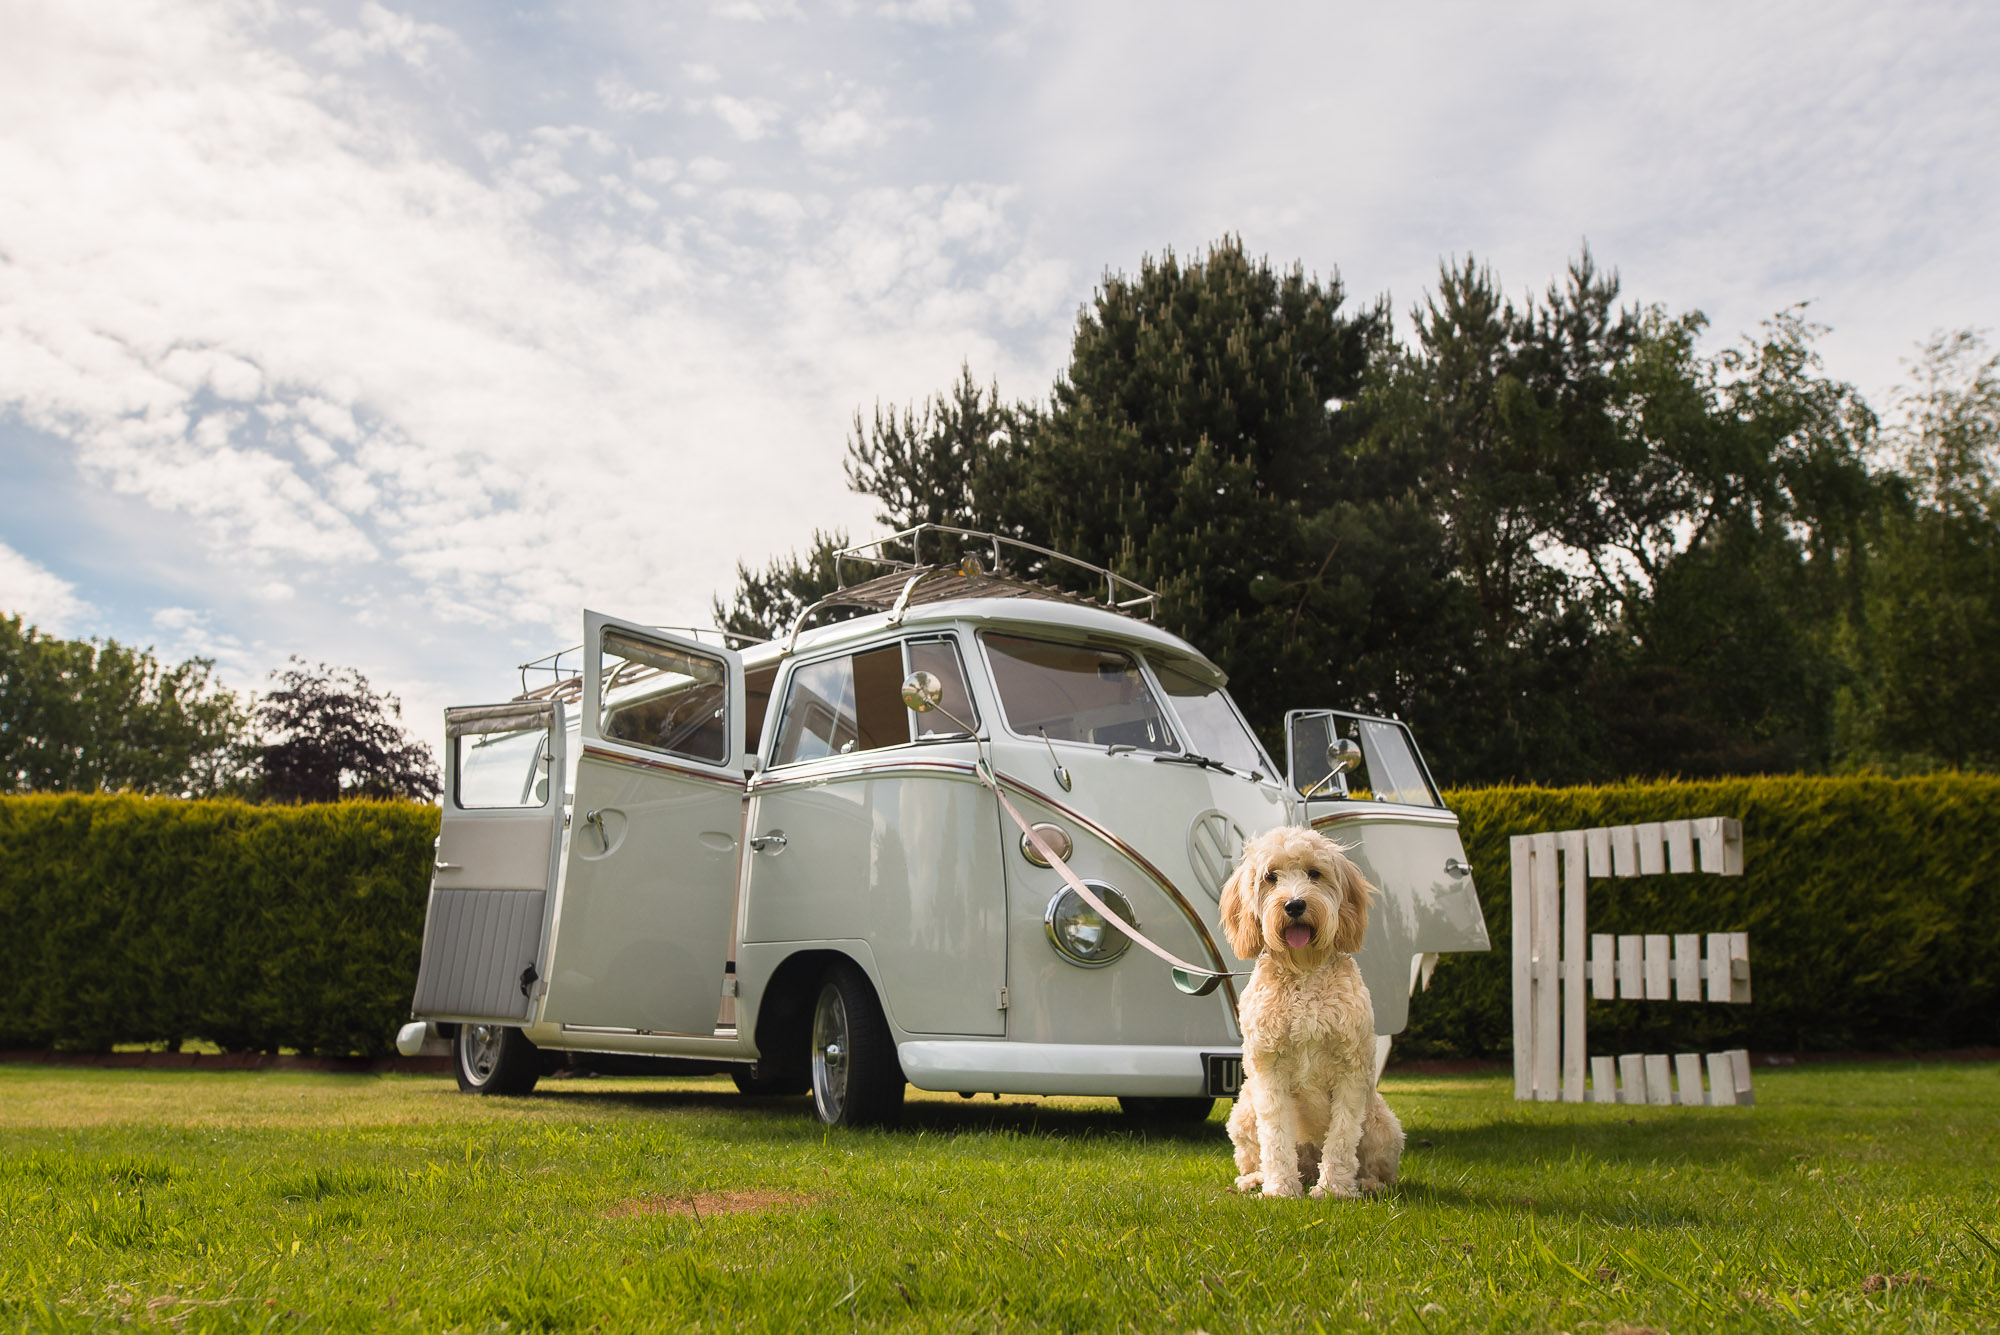 Phoebe the Camper Van